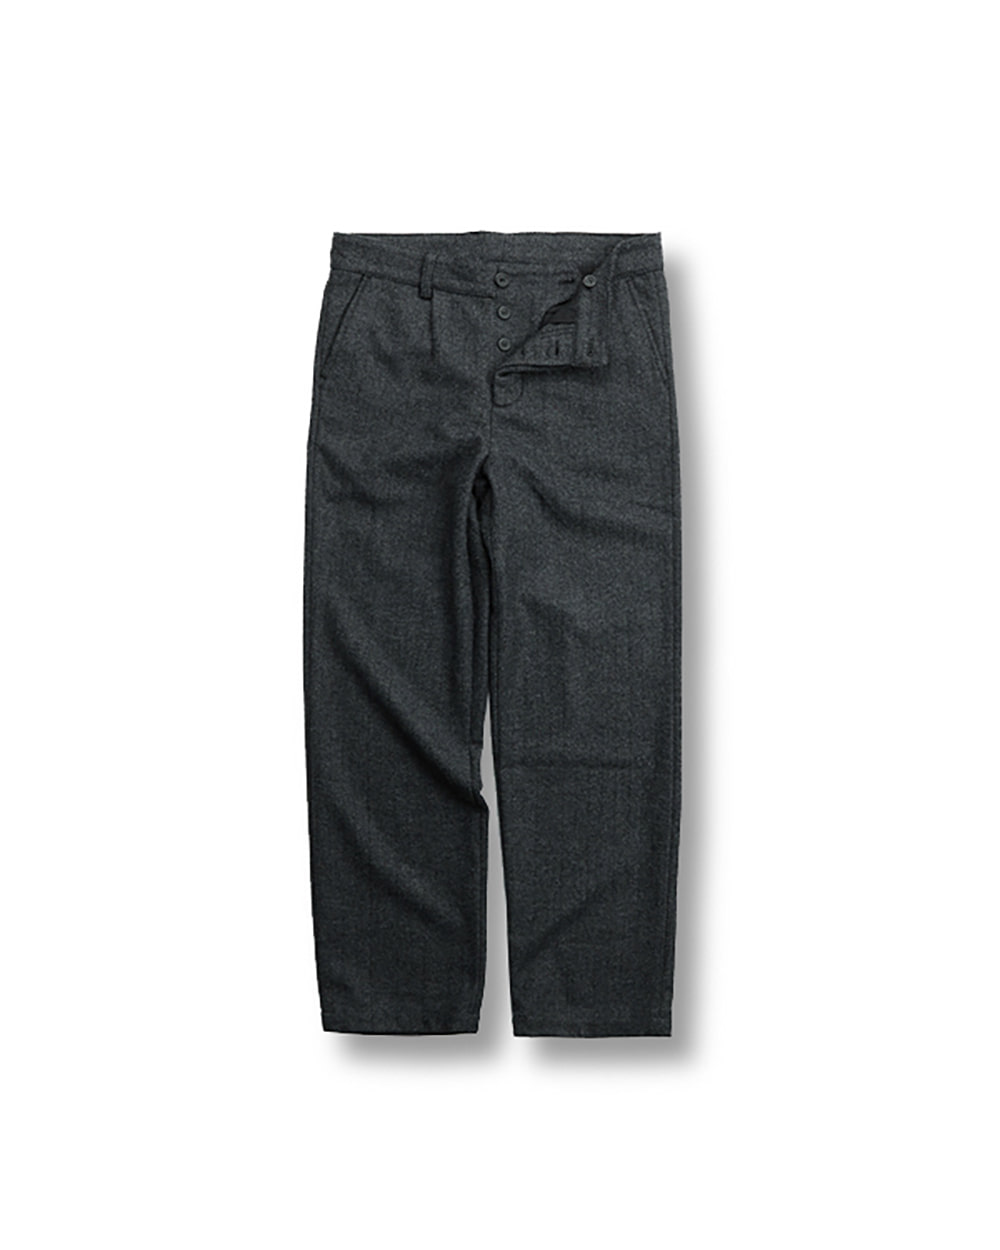 WOOL HERRINGBONE PANTS DARK GRAY